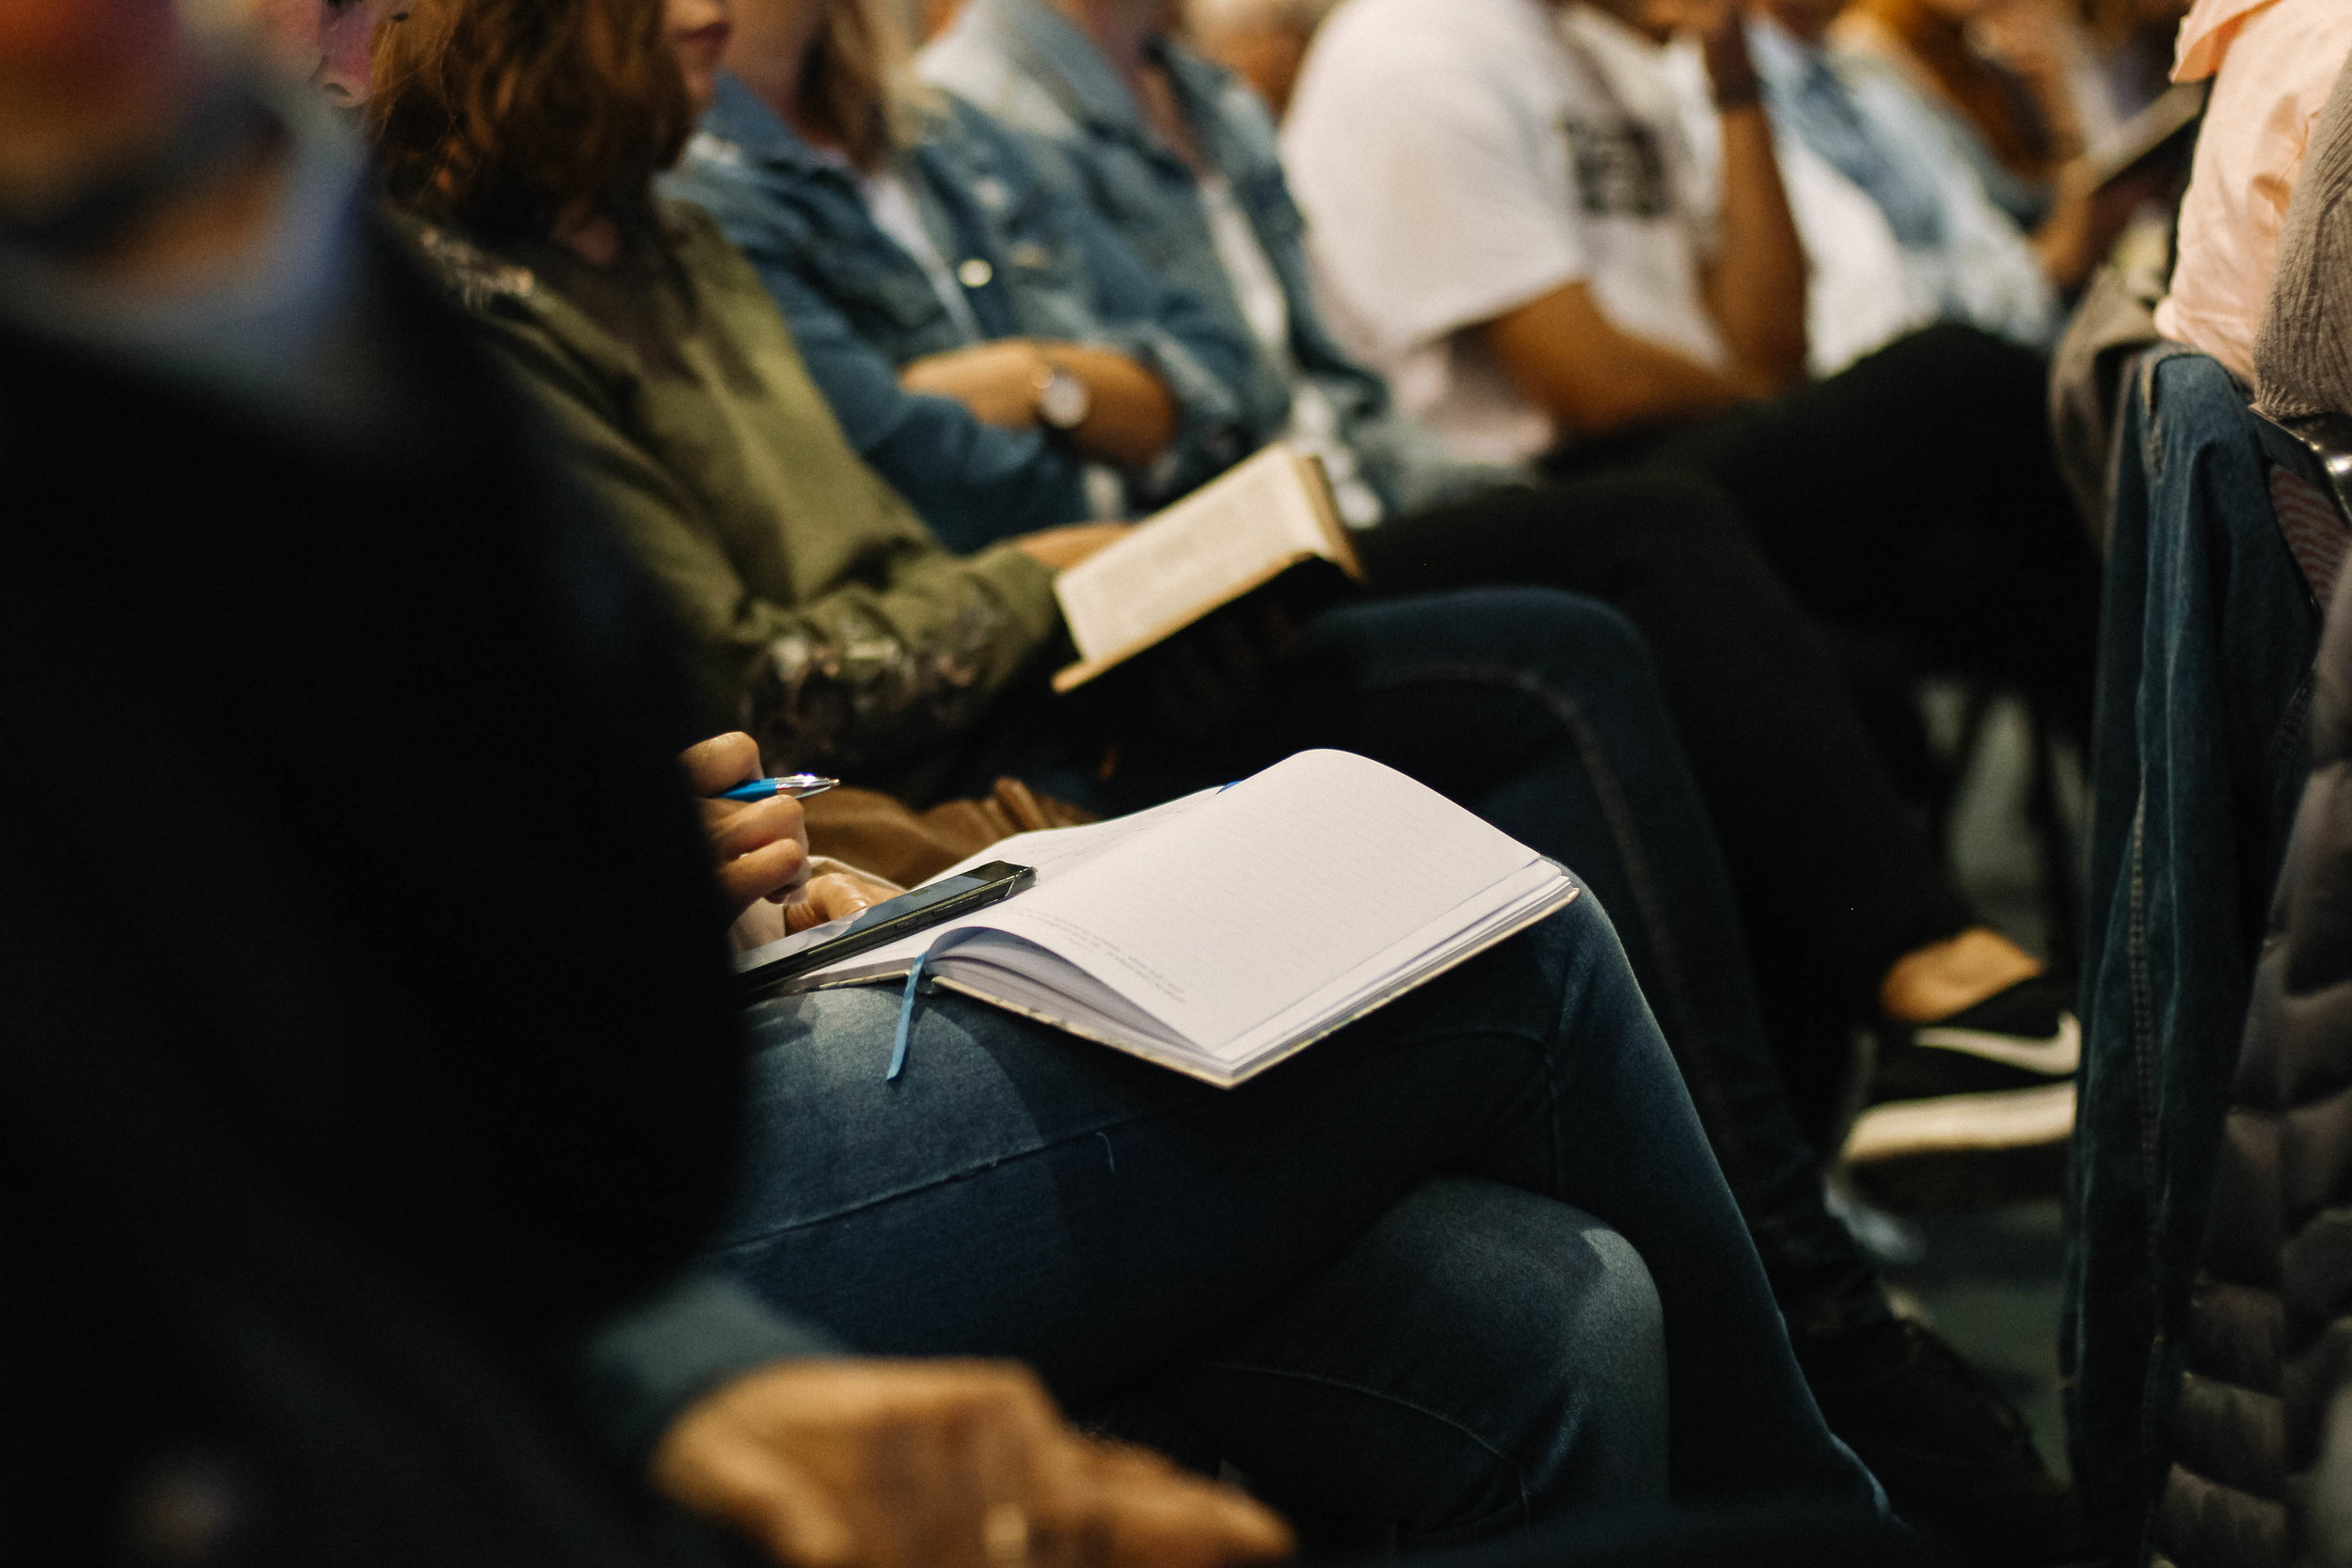 connect groups - Connect Groups are where we really experience the depths of community at Santa Clara Church. Life is better together, so sign up for a connect group.